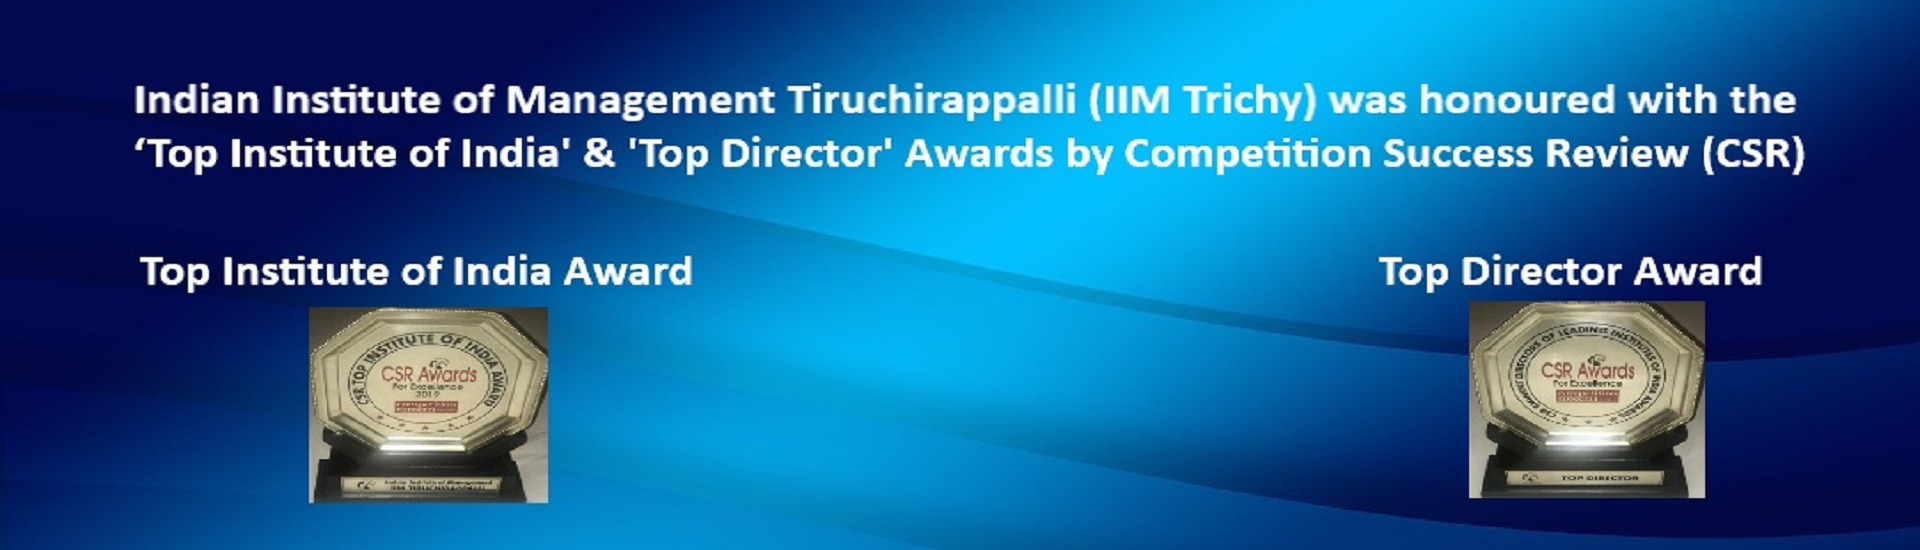 IIMT was honoured with the 'Top Institue of India' & 'Top Director' Awards by Competition Success Review (CSR)